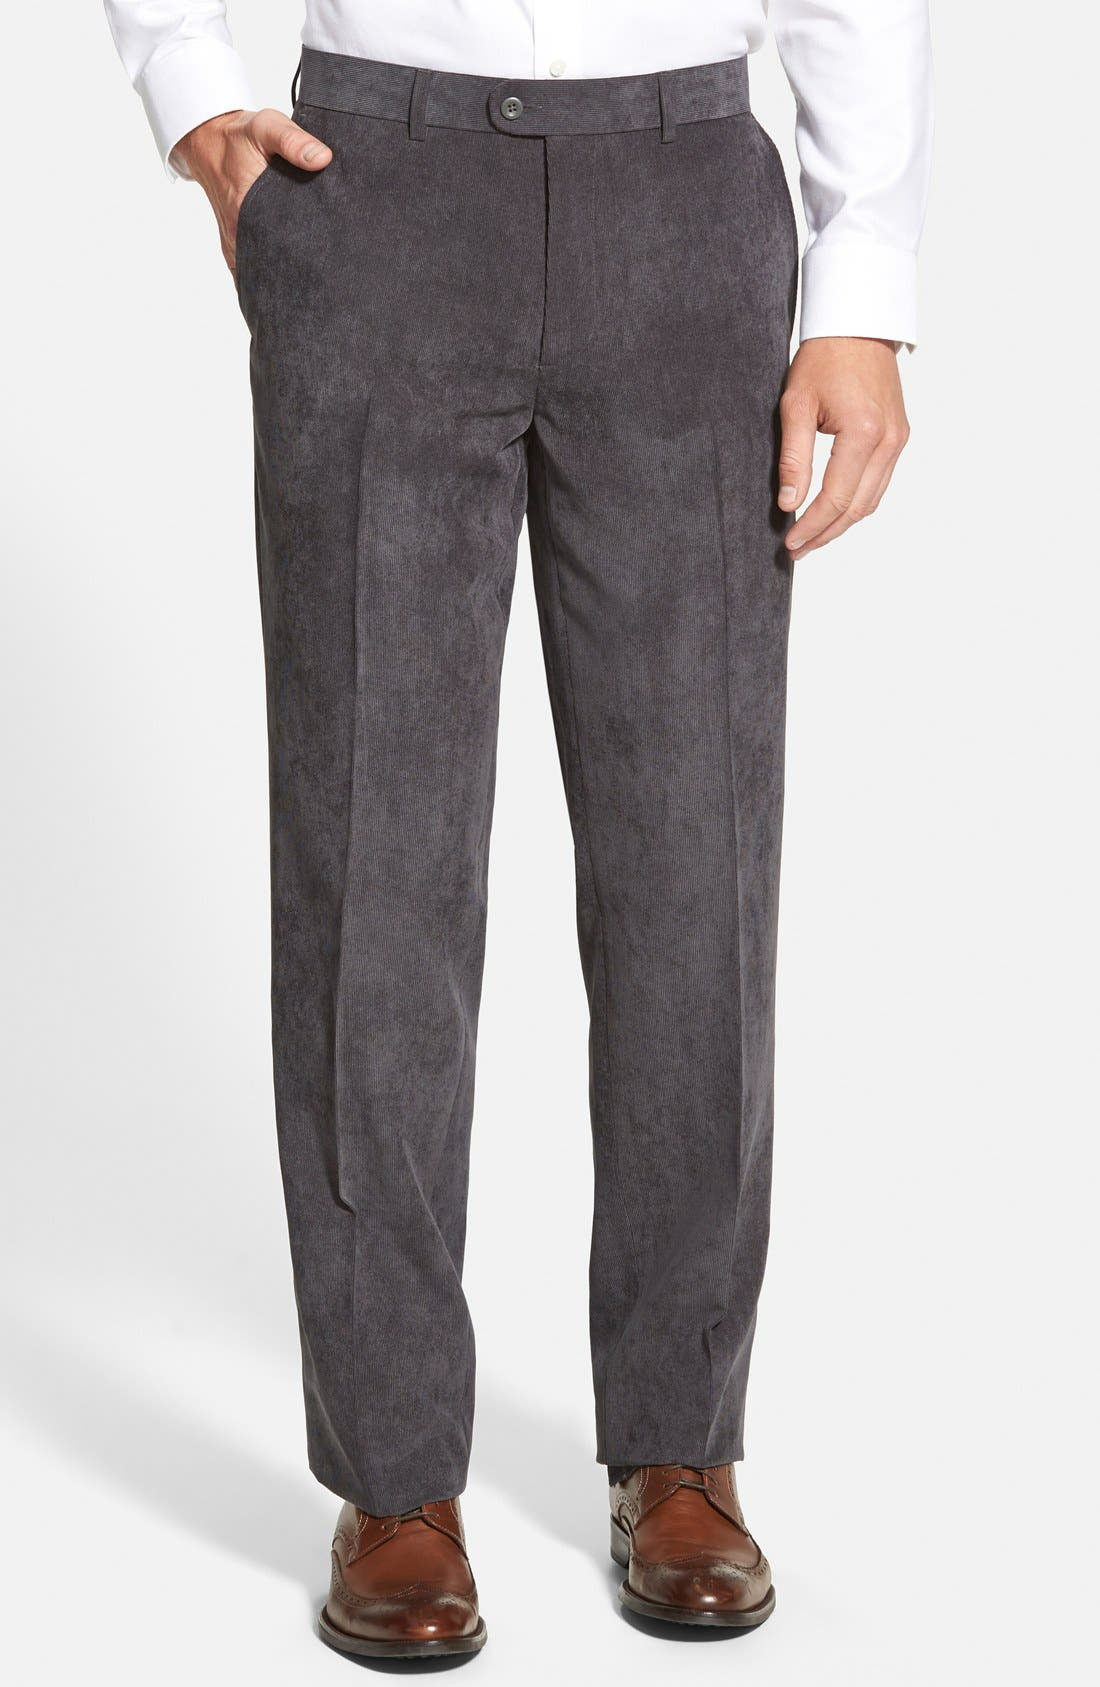 'Micro Air' Wrinkle Resistant Microfiber Corduroy Pants,                         Main,                         color, Medium Grey